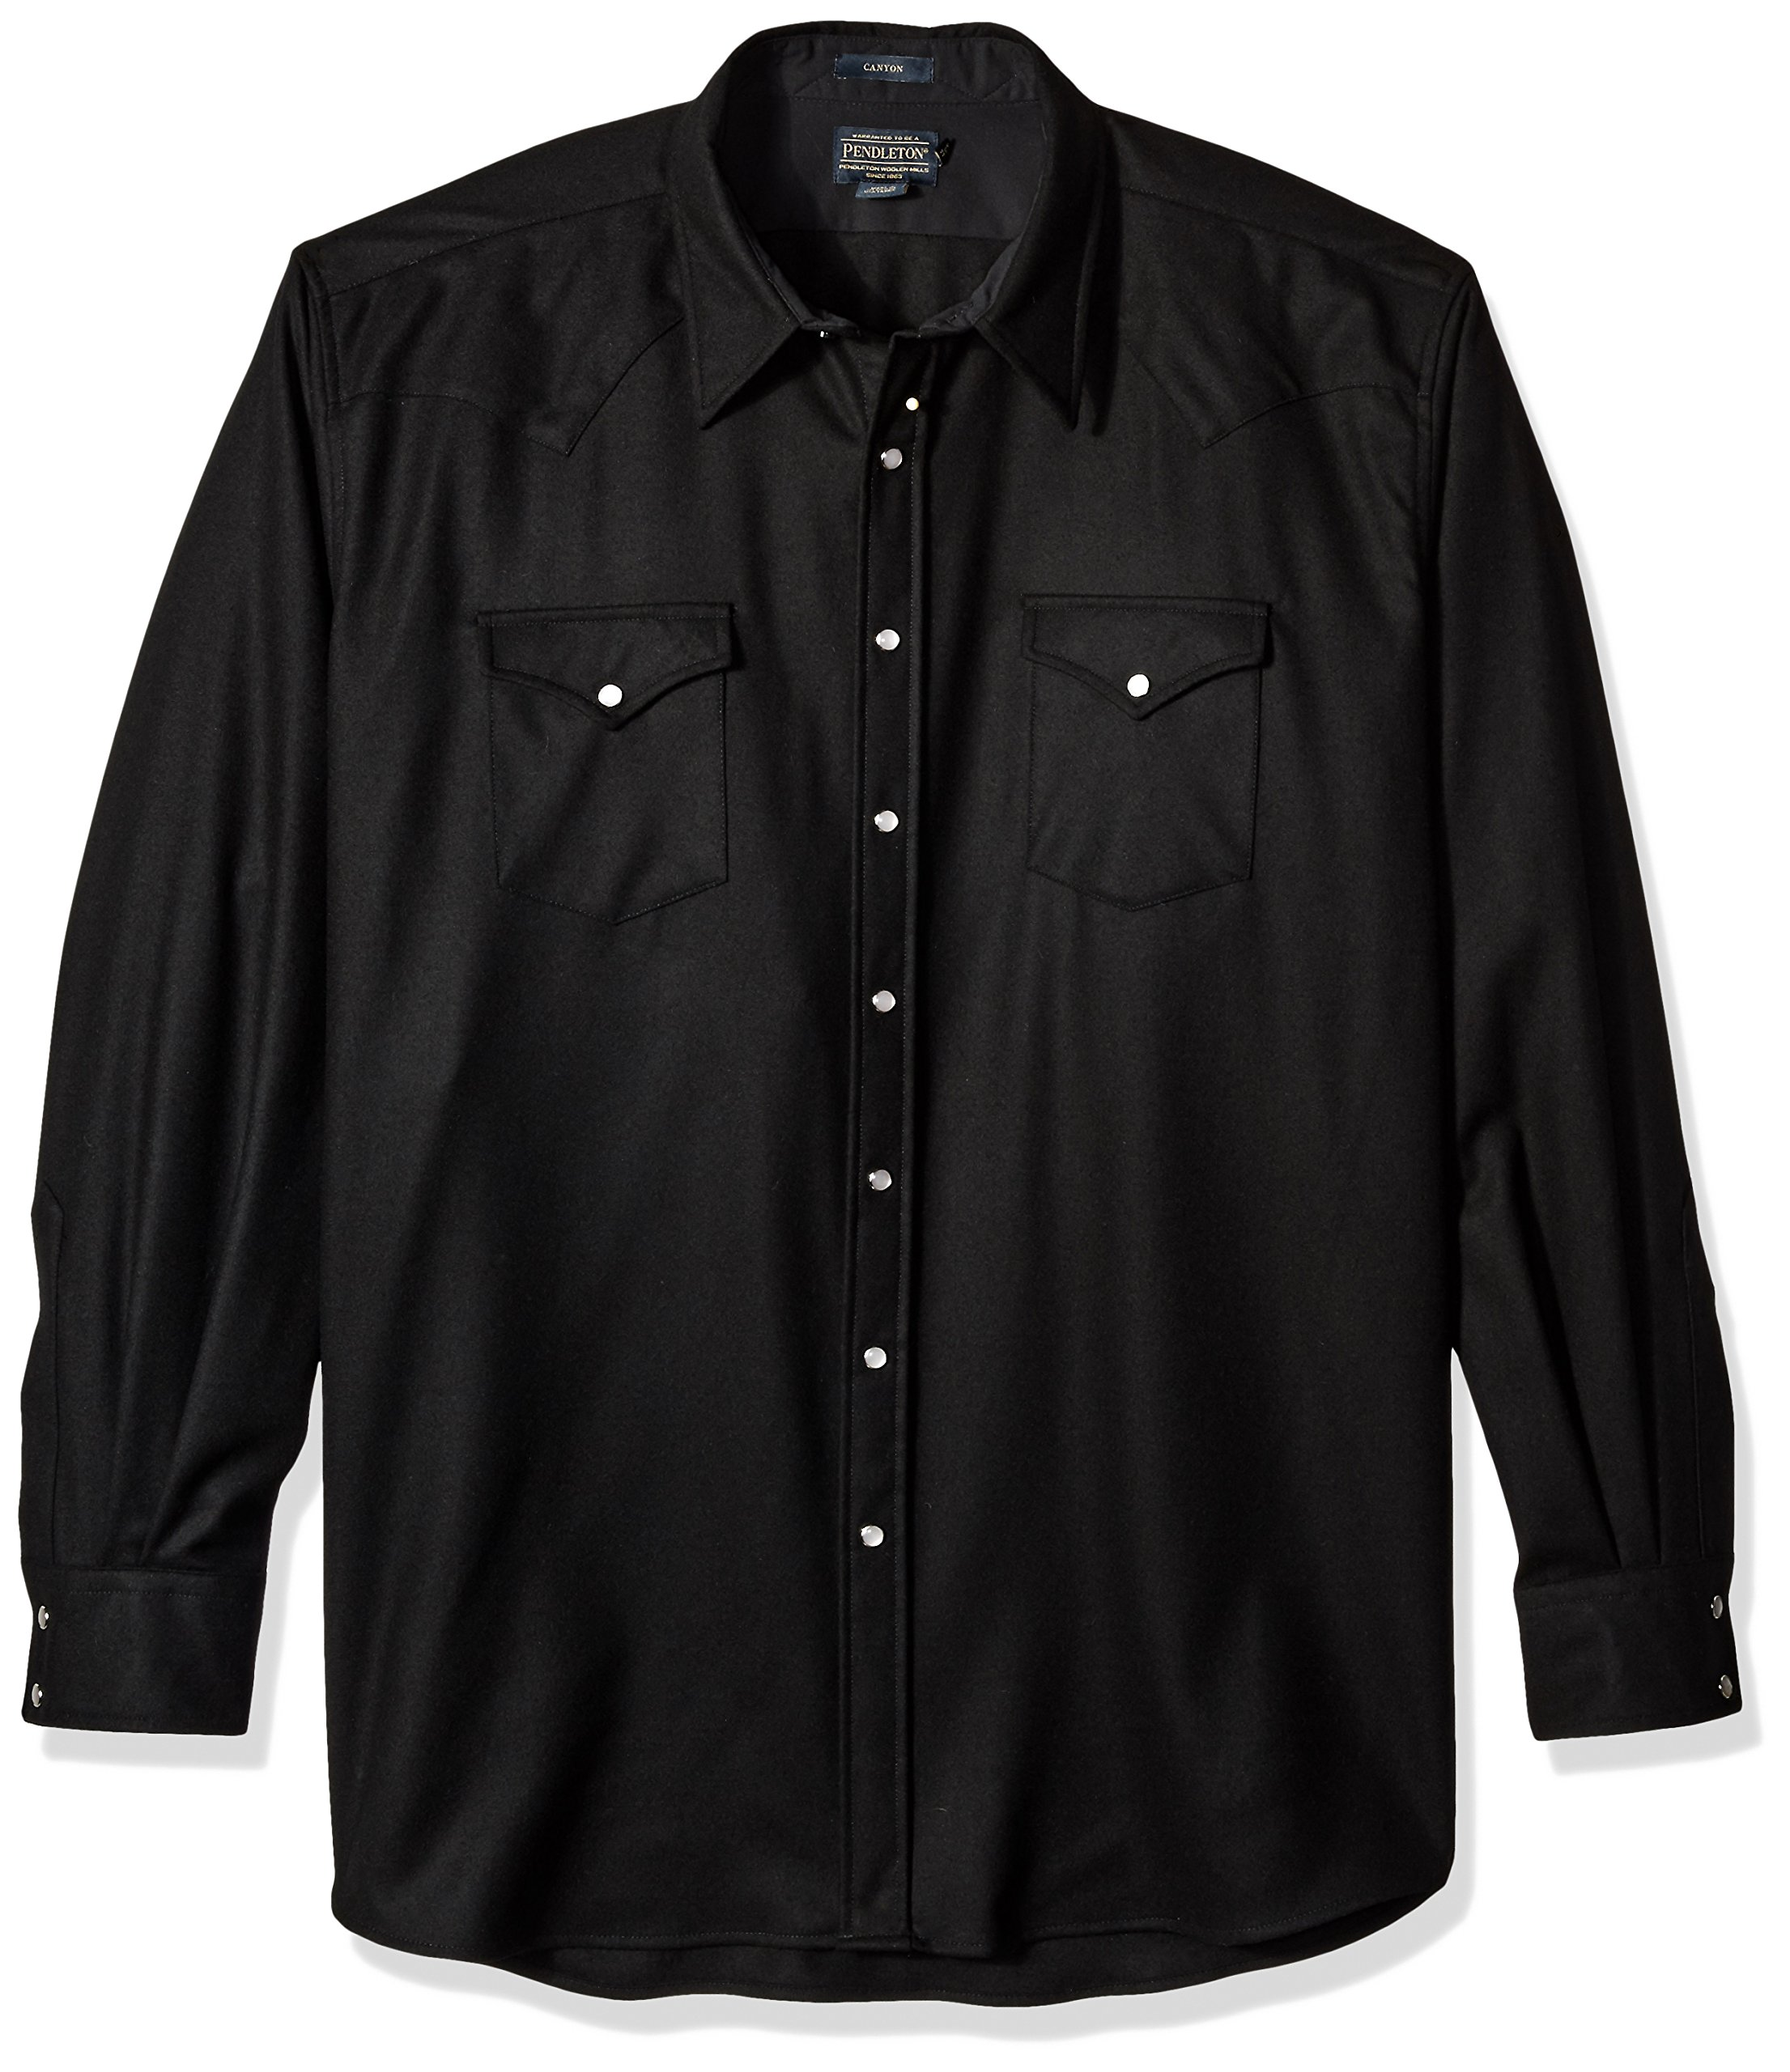 Pendleton Men's Big & Tall Long Sleeve Canyon Shirt, Black, 3X